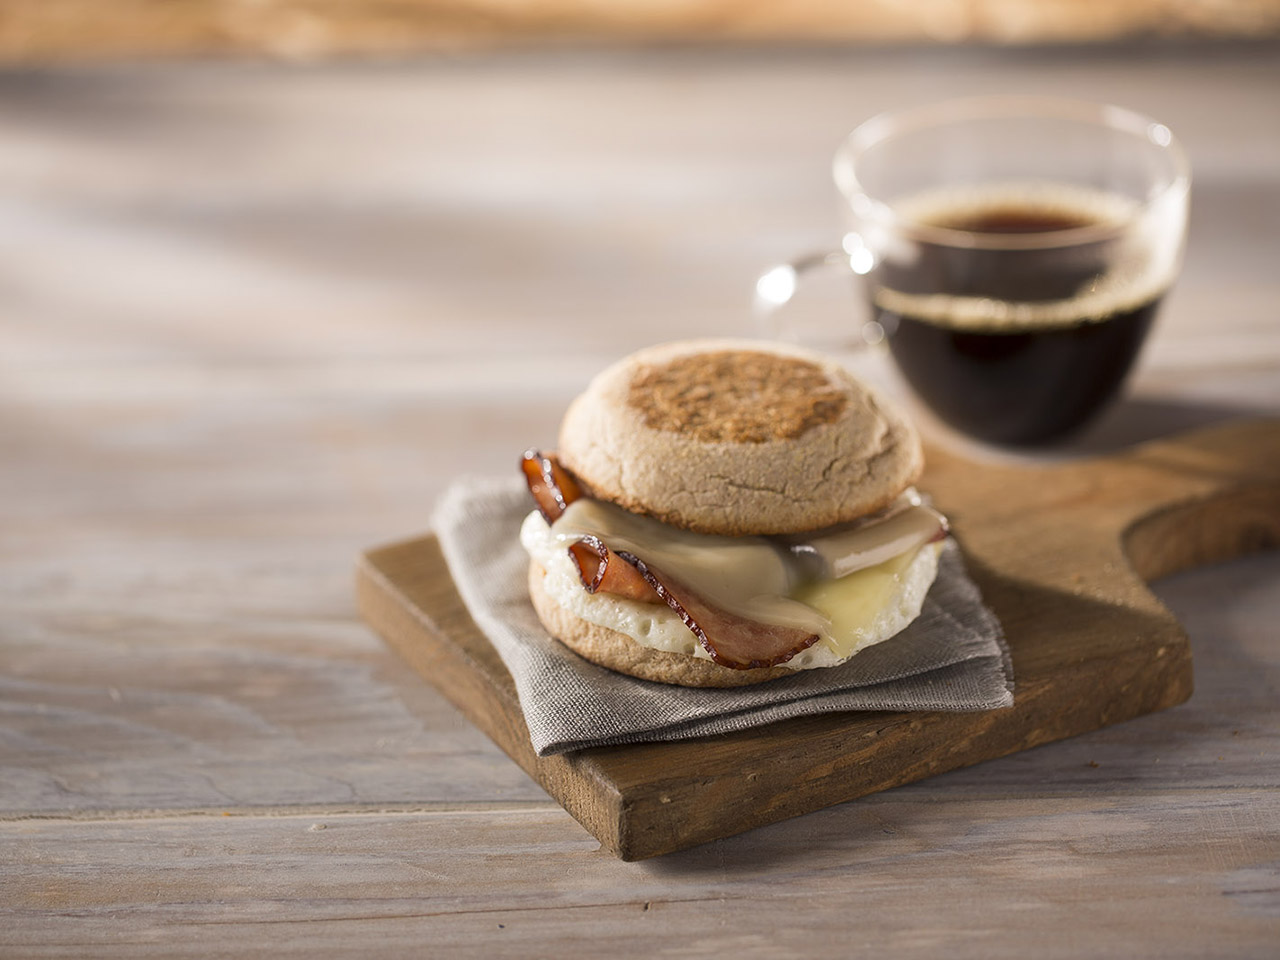 bacon egg breakfast sandwich on cloth napkin, wooden board with coffee — healthiest items to order at starbucks